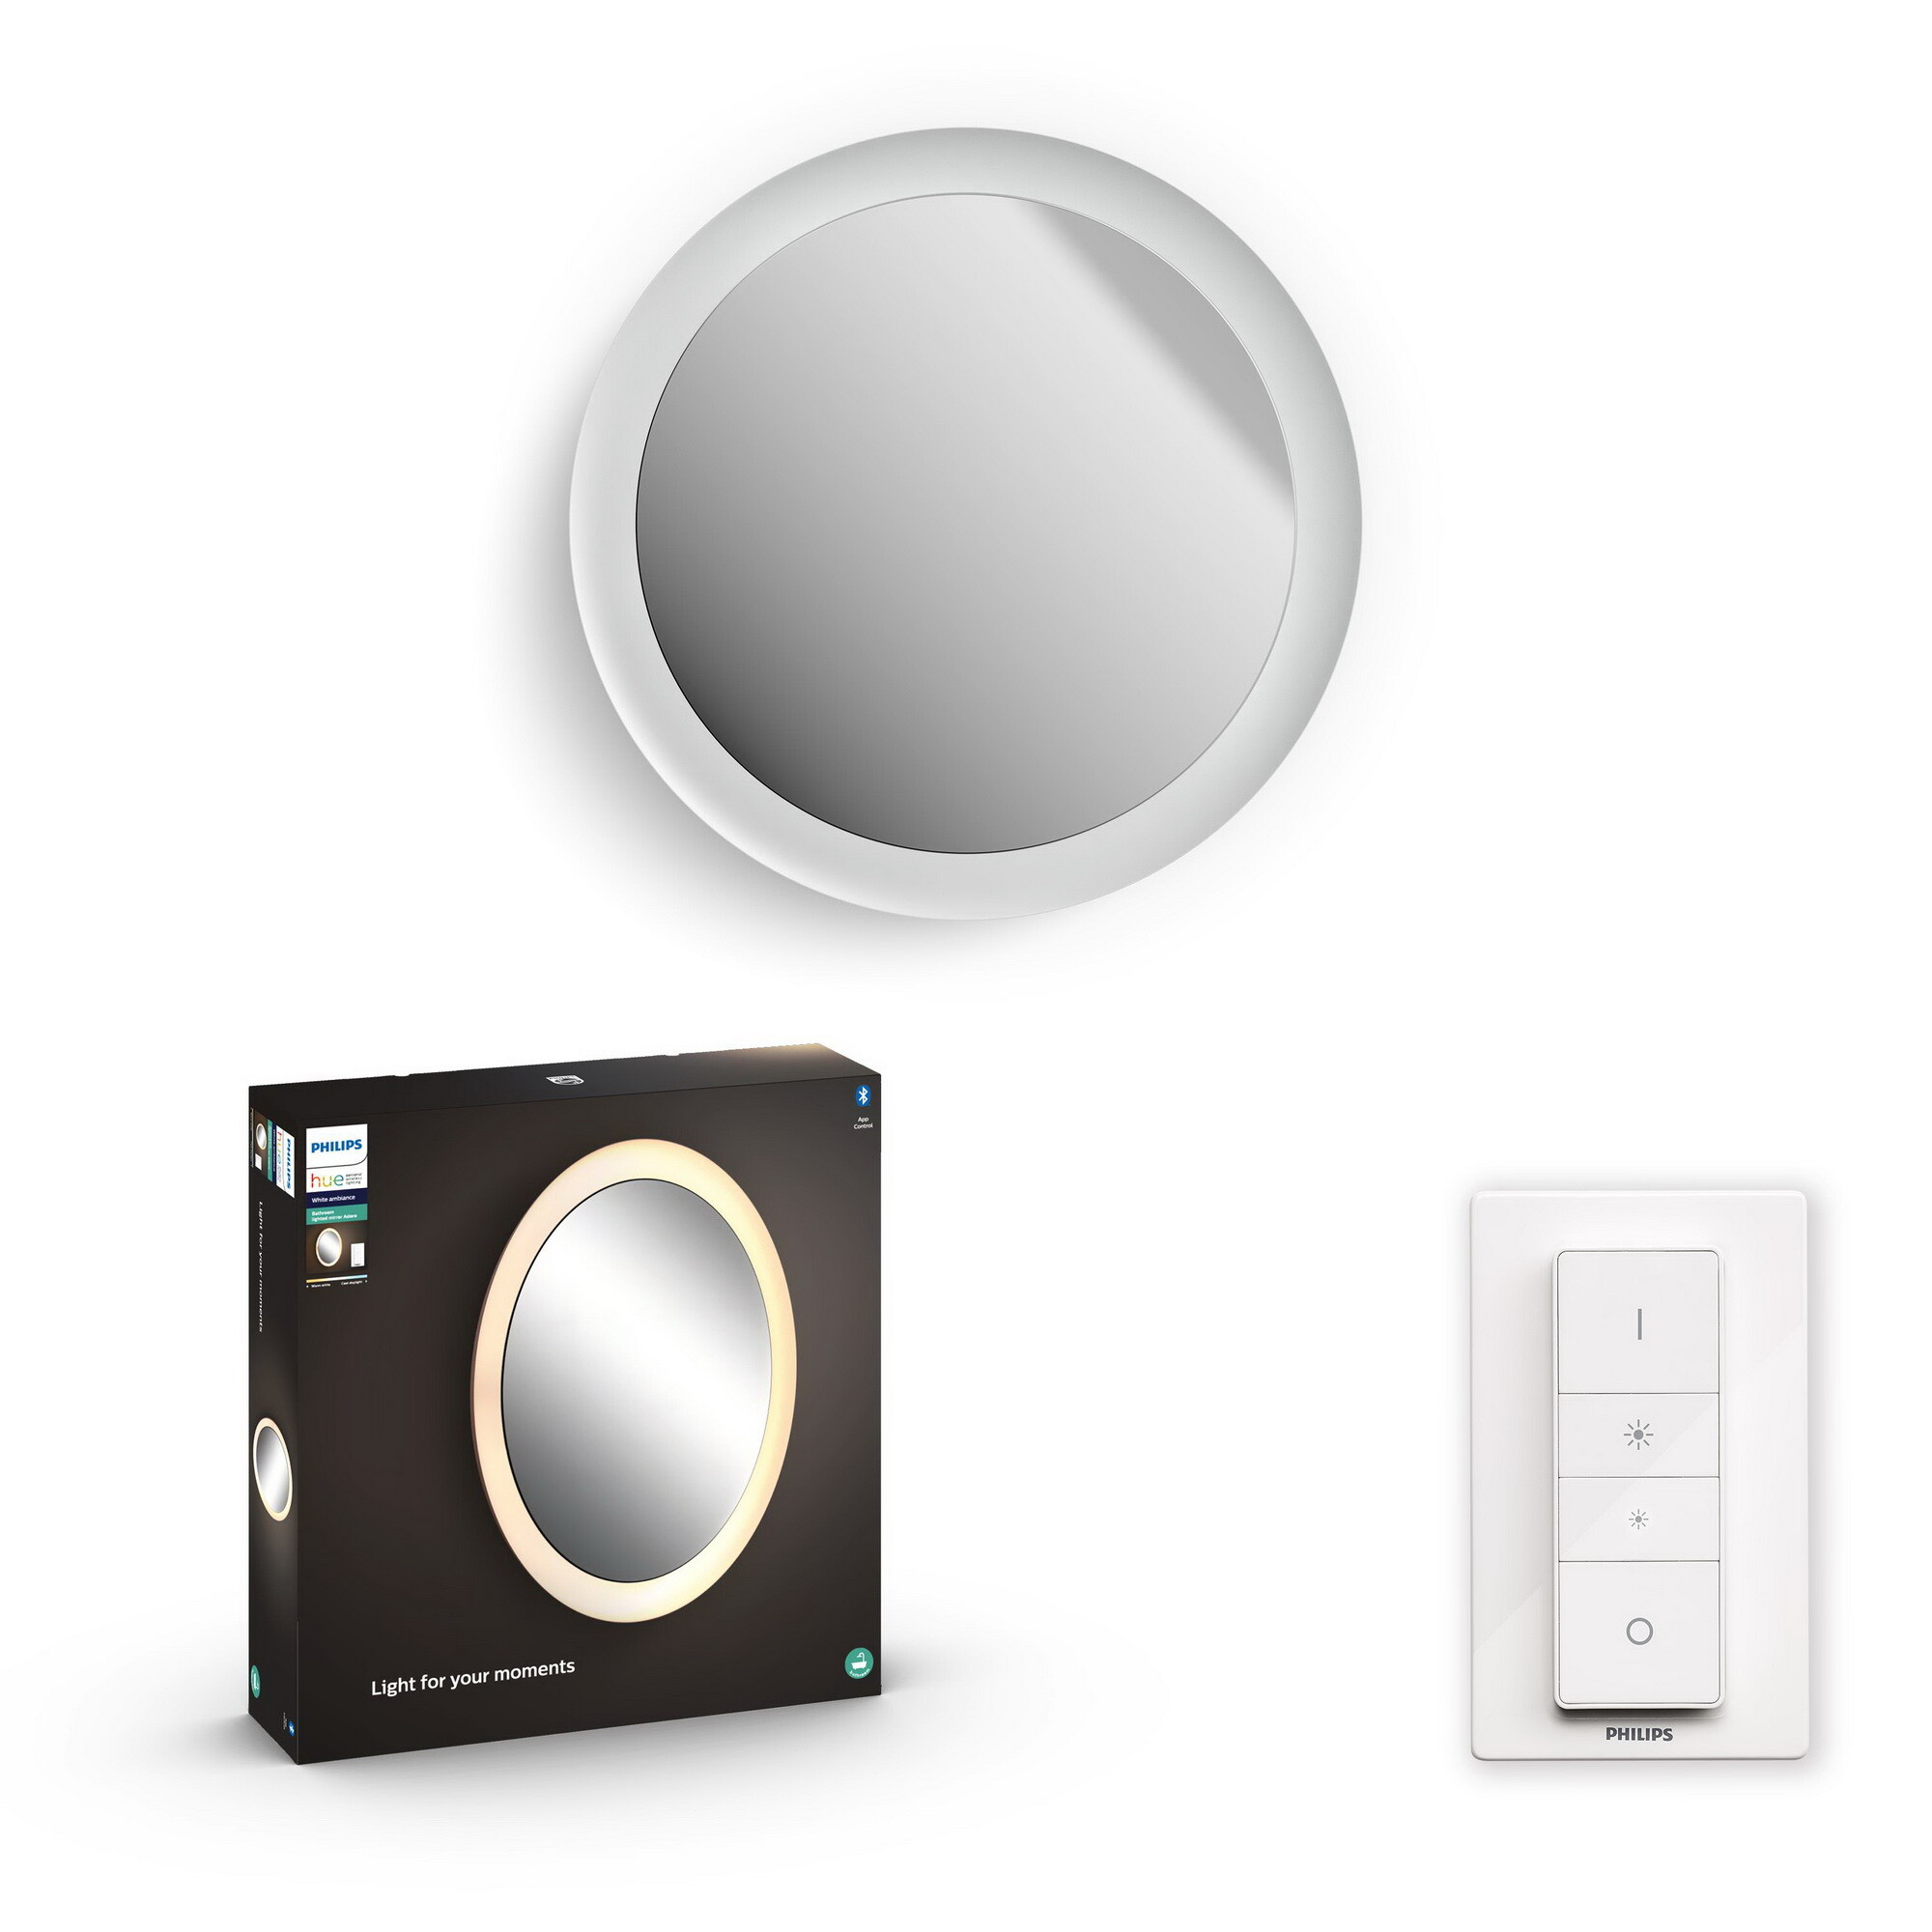 Philips HUE ADORE Wandlamp LED 1x27W/2400lm Wit